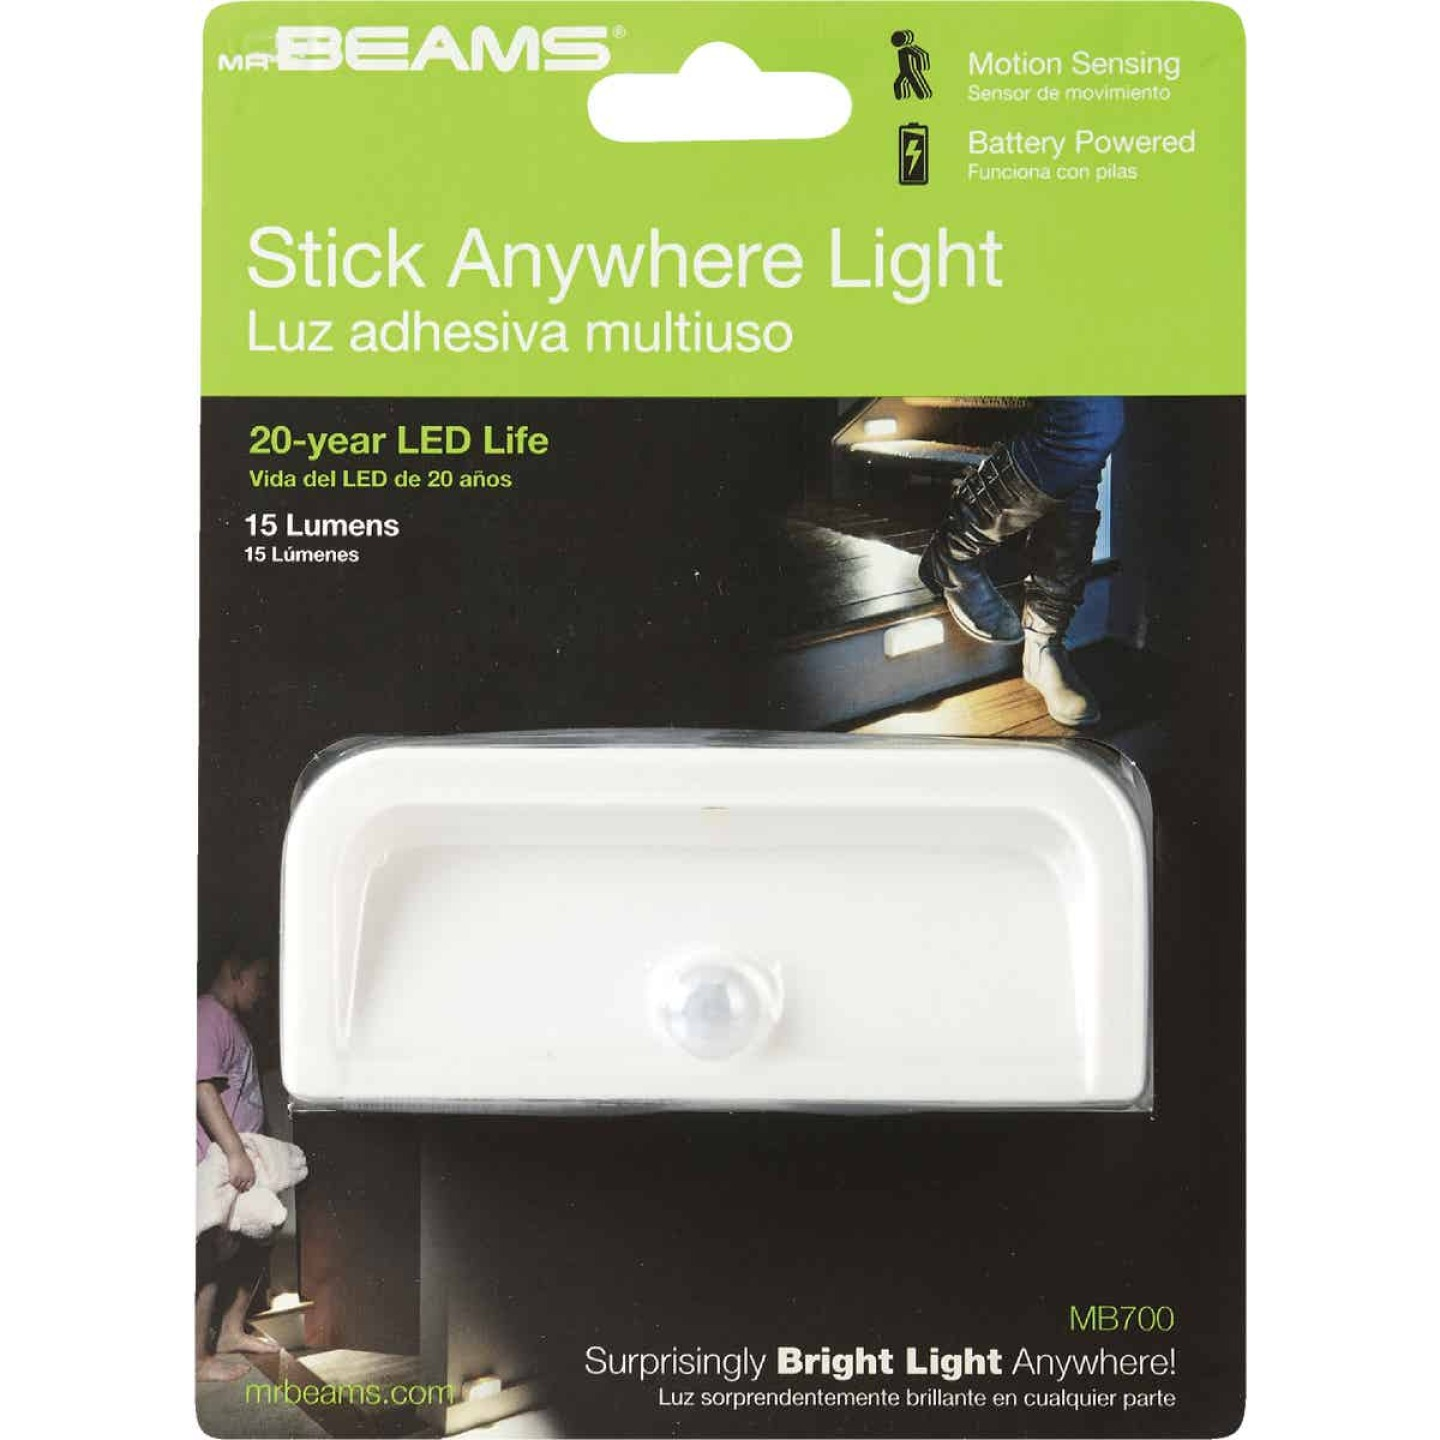 Mr. Beams White LED Battery Operated Light Image 2